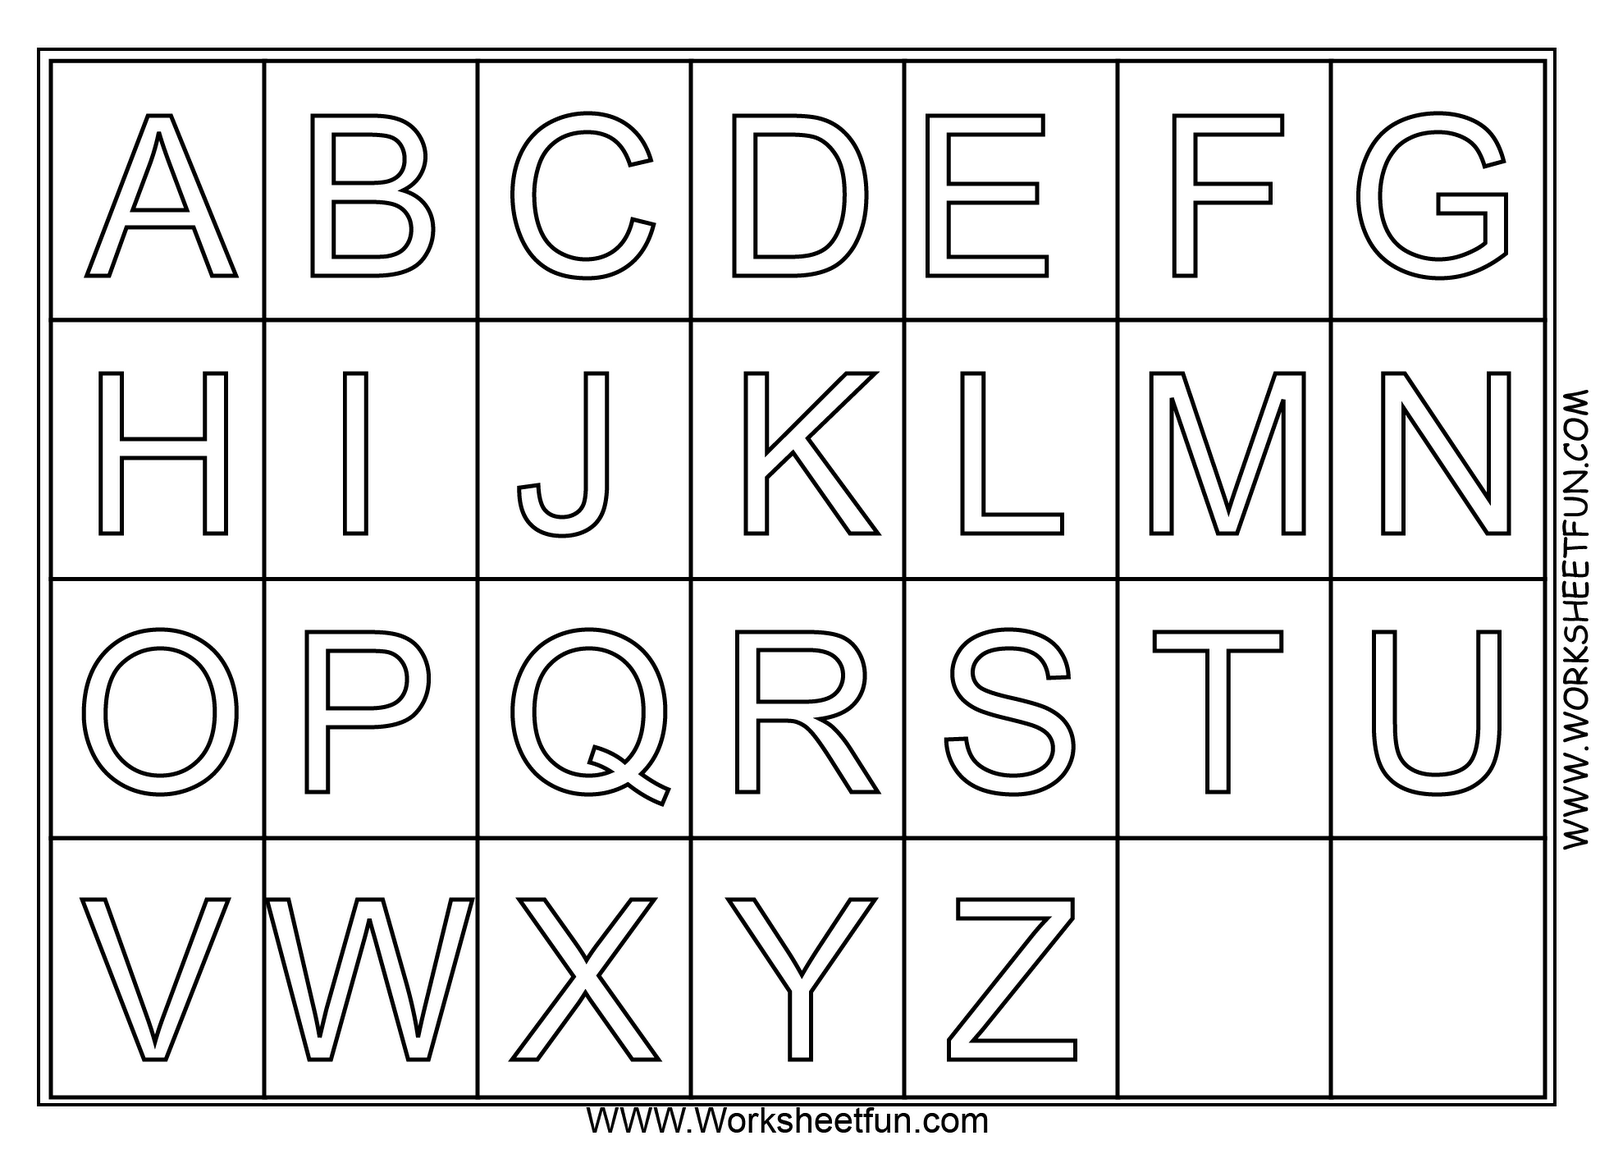 Alphabet Review Coloring Pages : A z alphabet coloring pages download and print for free